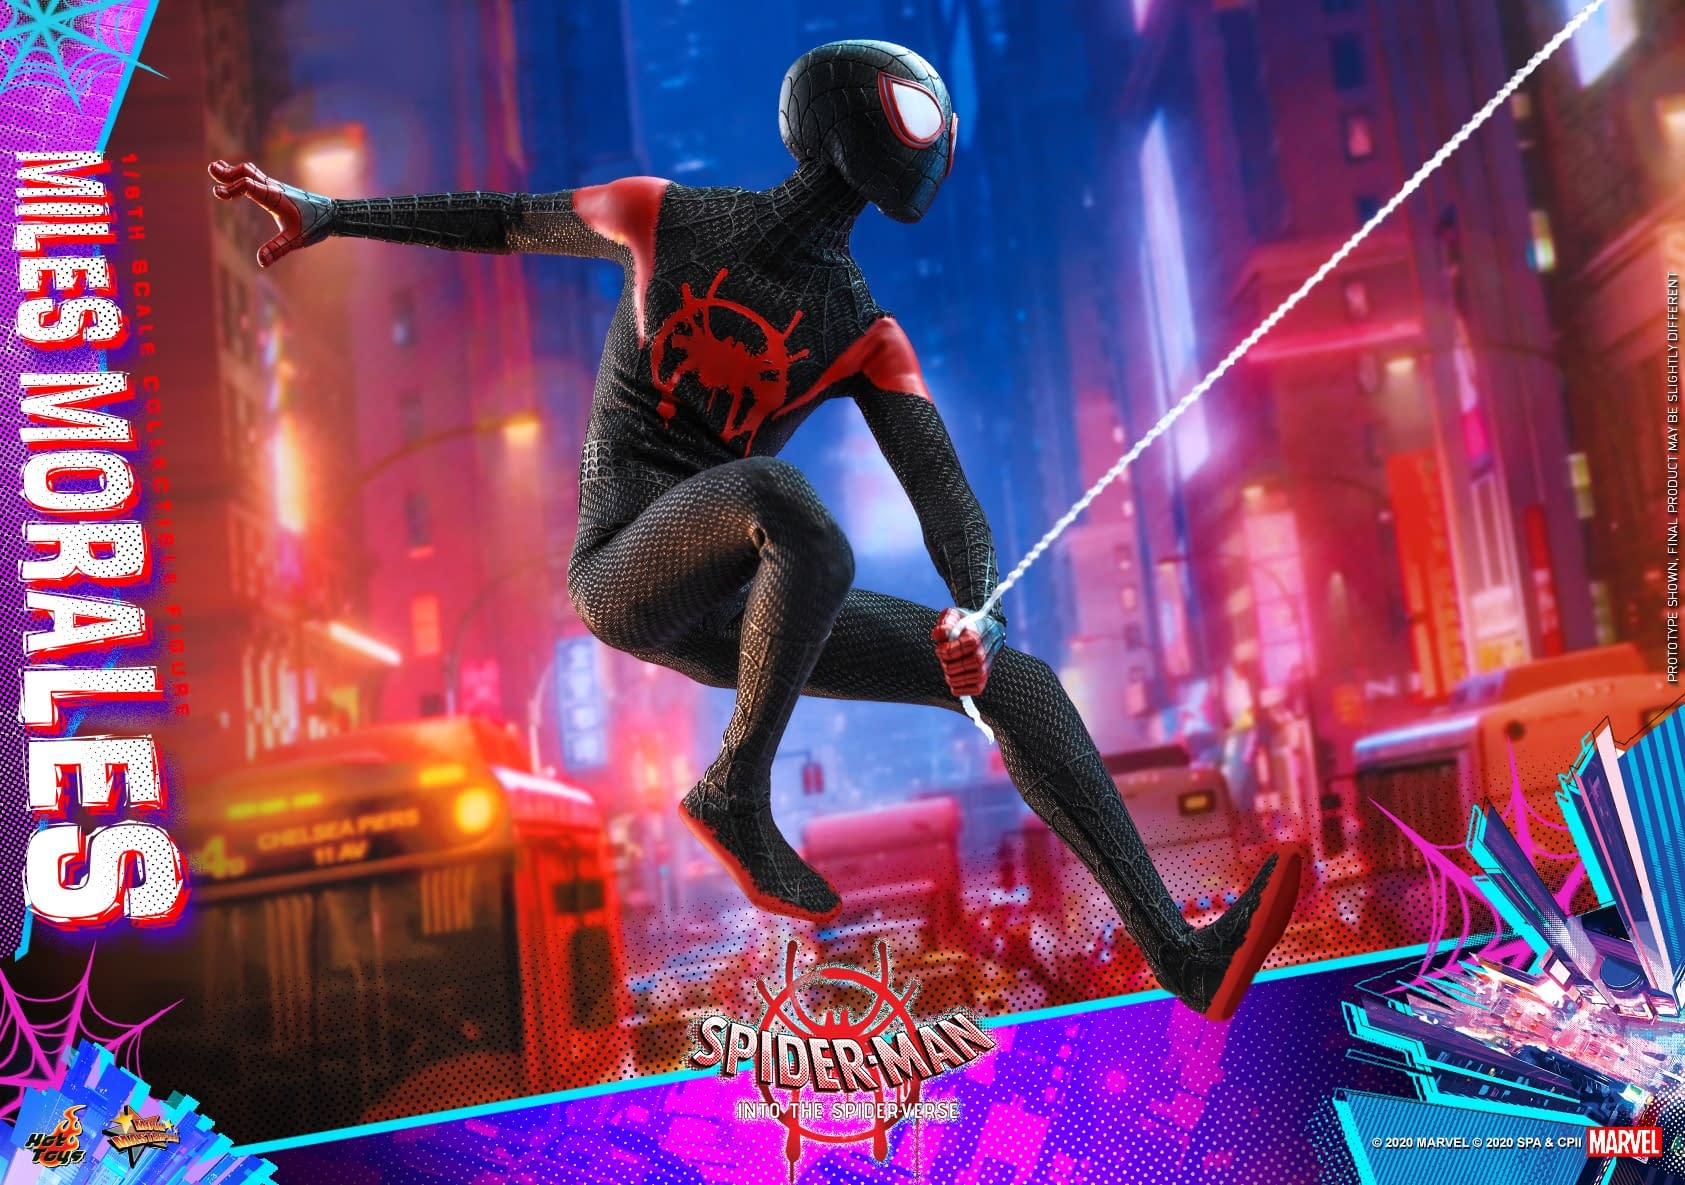 Spider-Man Miles Morales Hits the Streets with New Hot Toys Figure